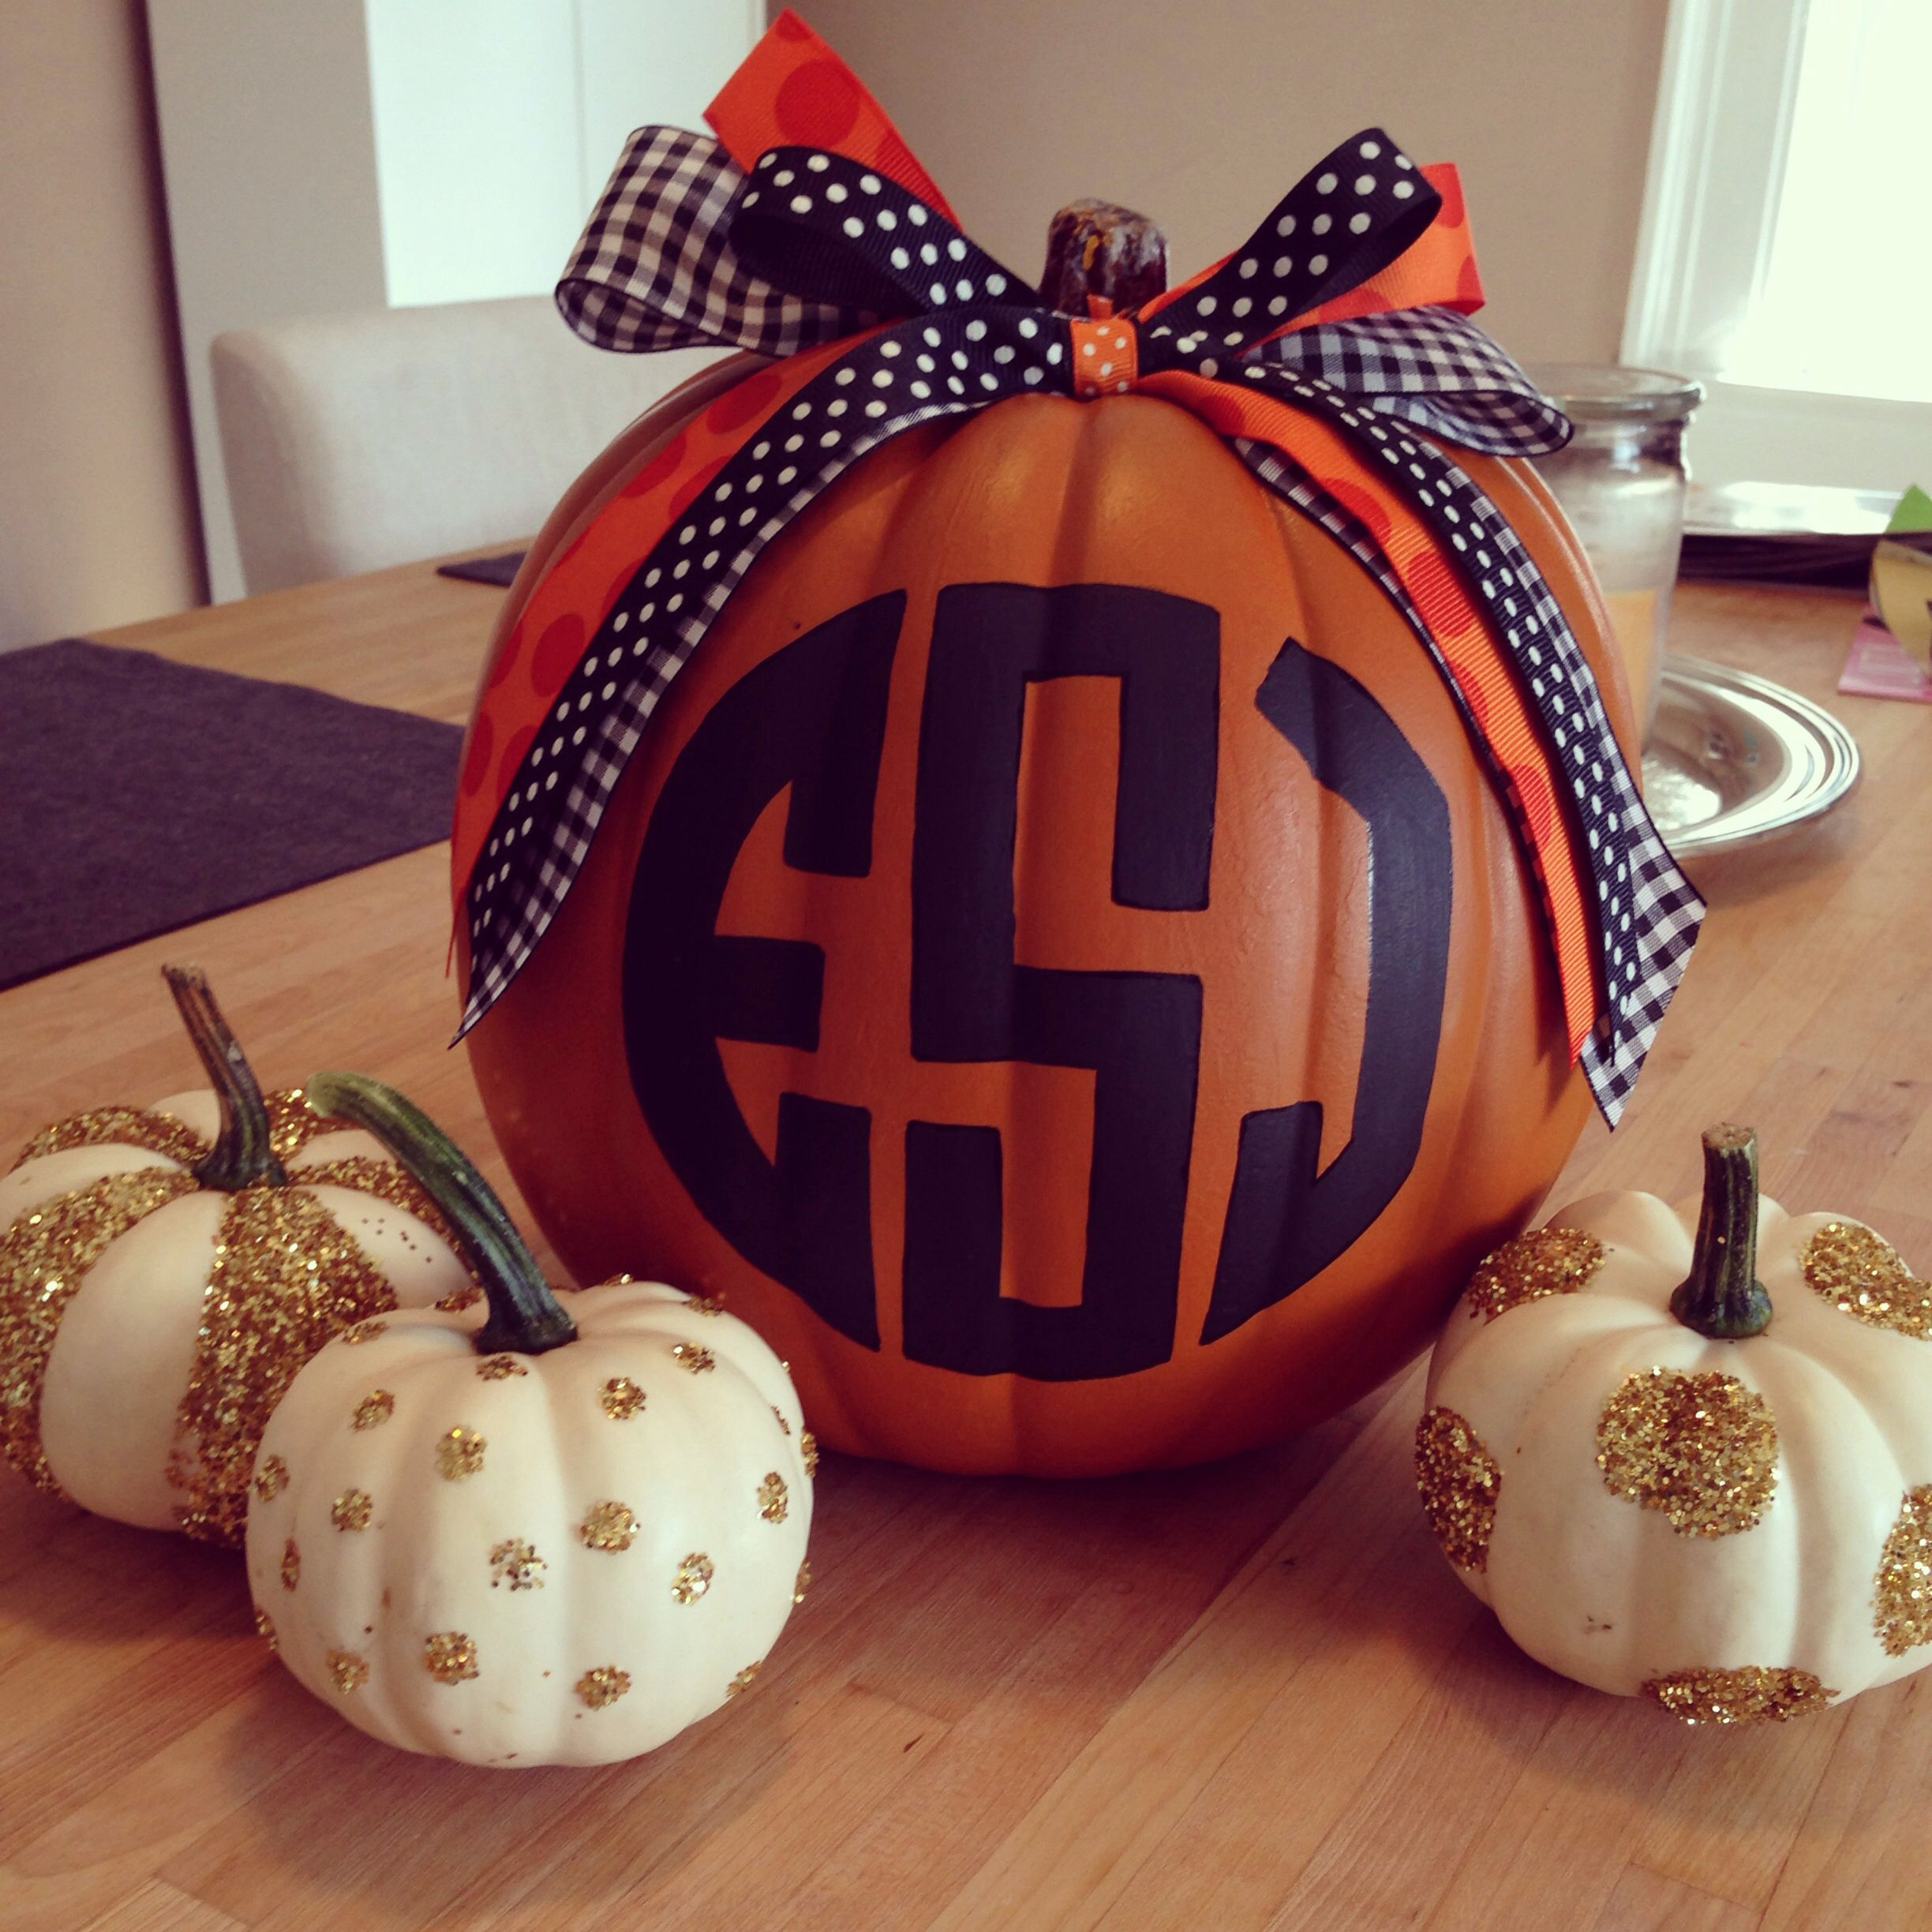 Another Monogrammed Pumpkin Embellished With Ribbon This